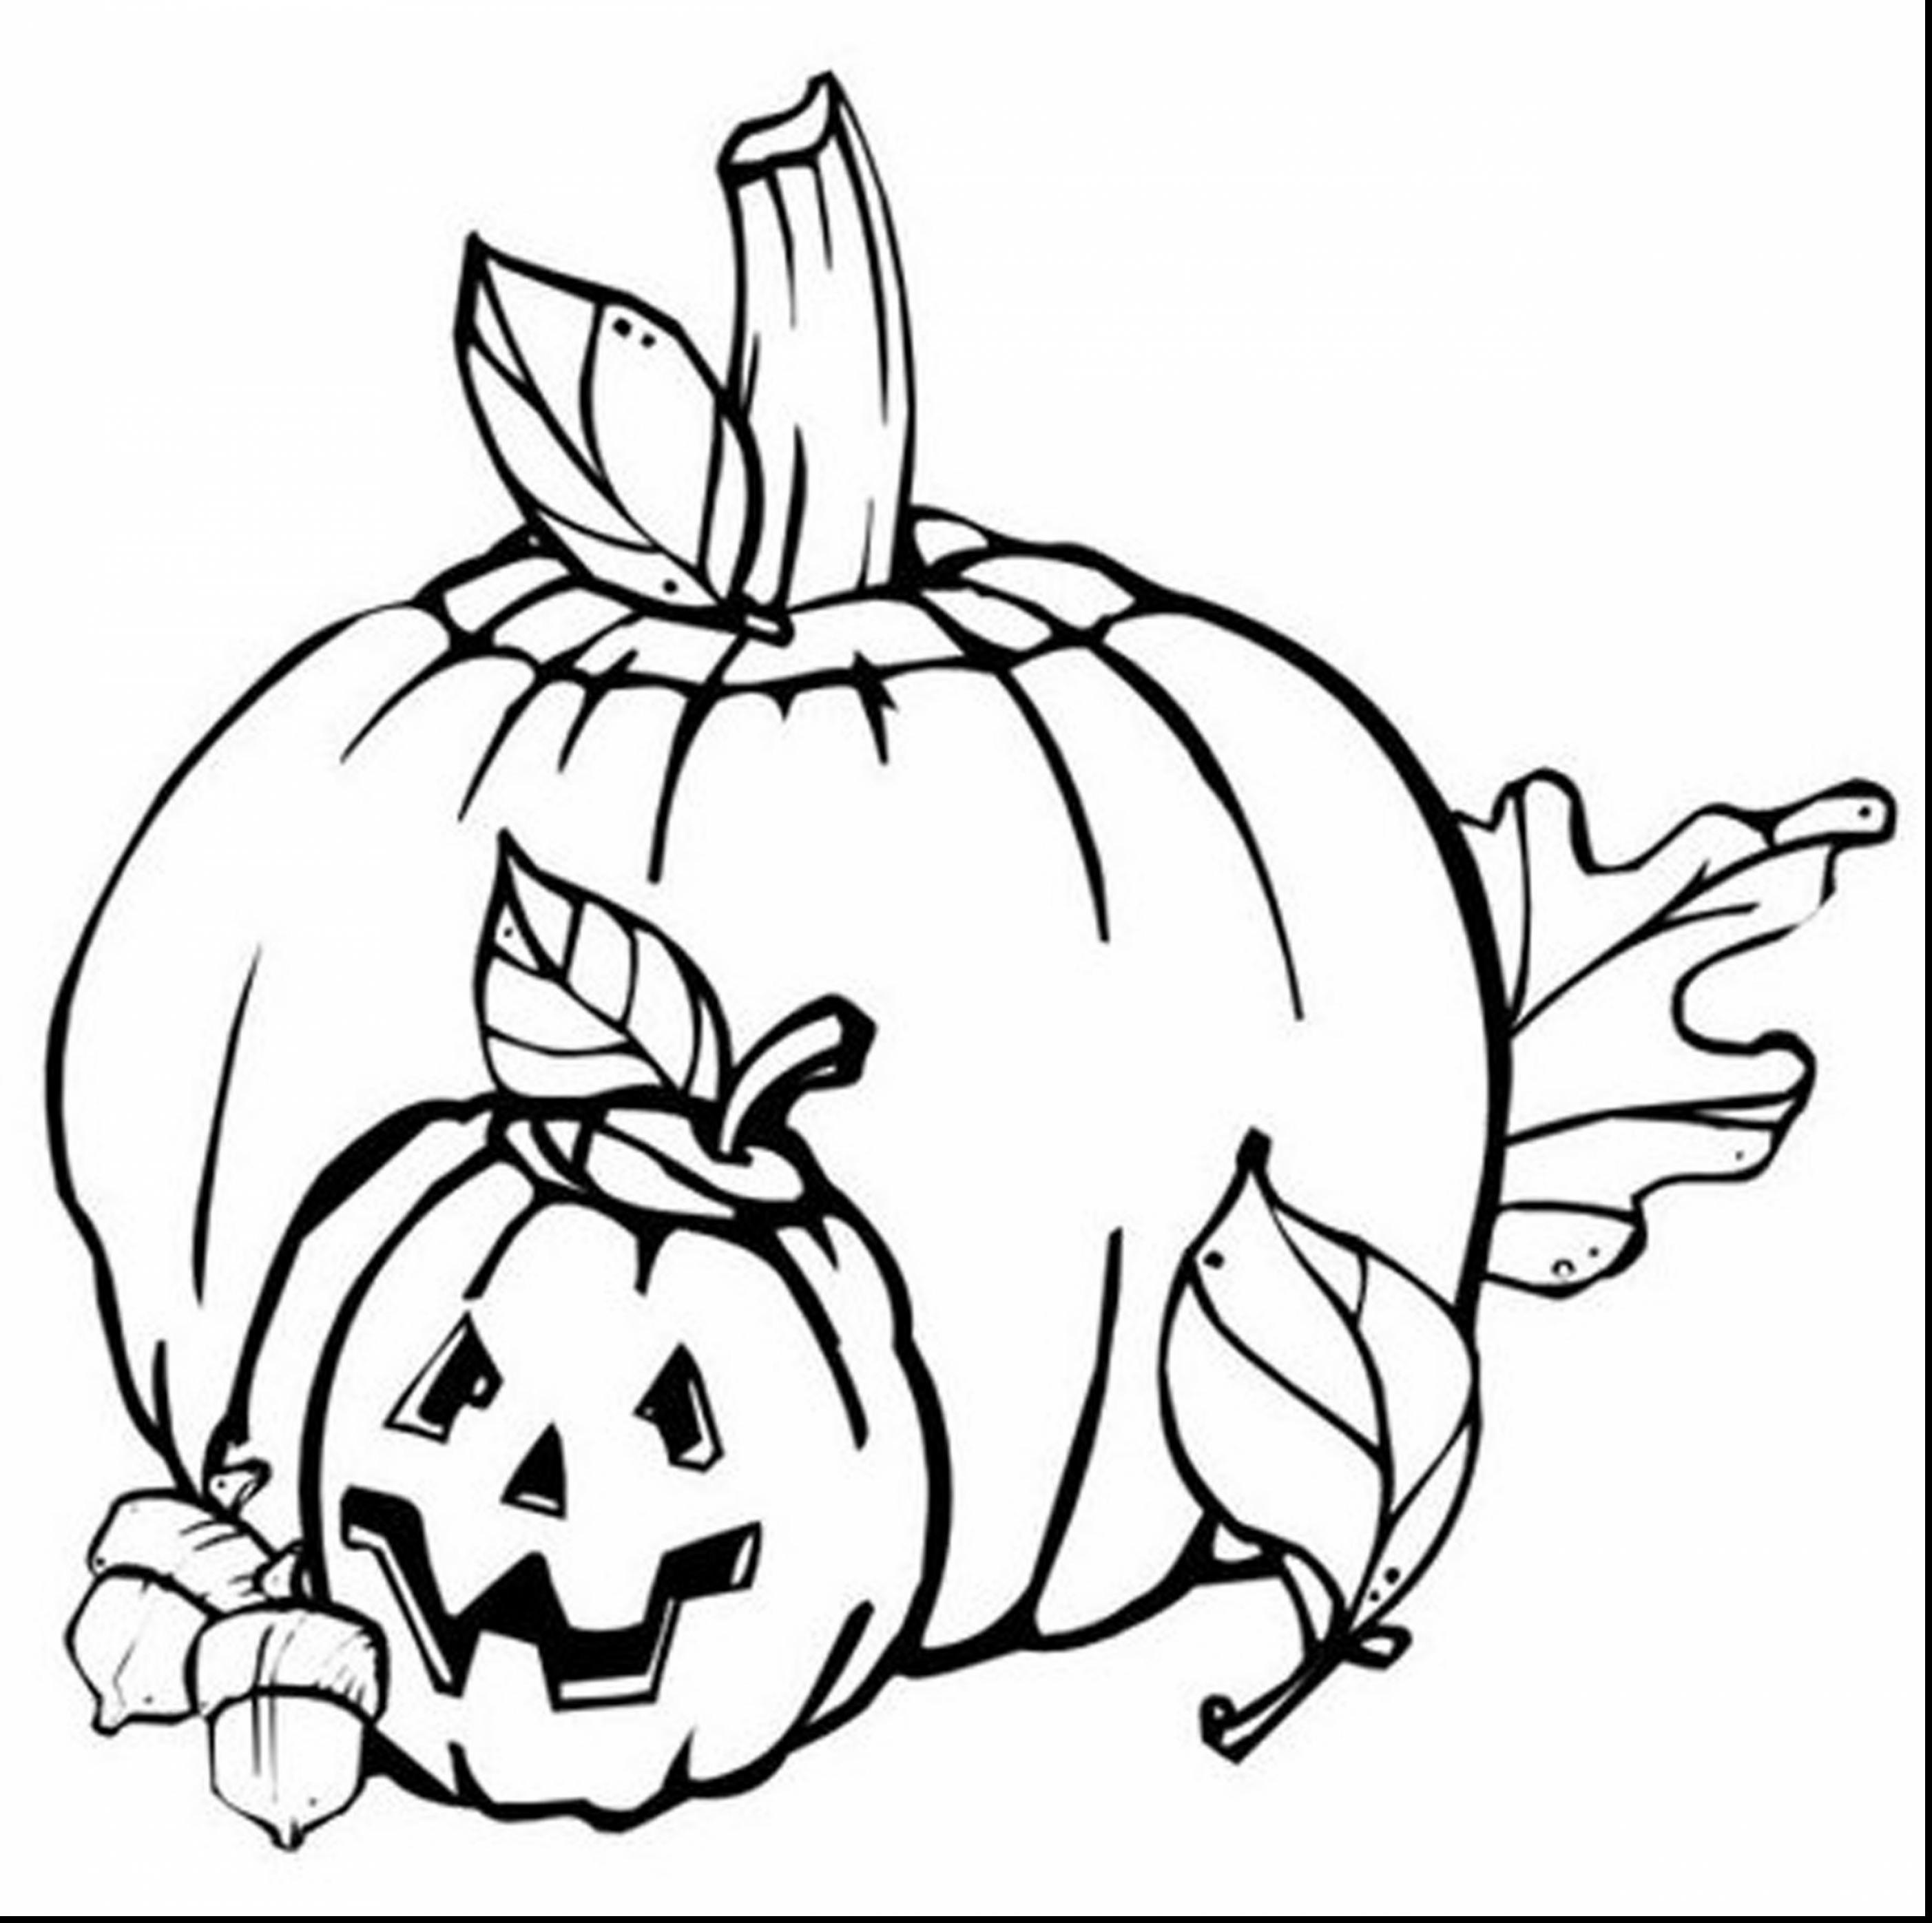 pumpkin and leaves coloring pages fall leaves clip art coloring pages at getcoloringscom pumpkin leaves coloring pages and